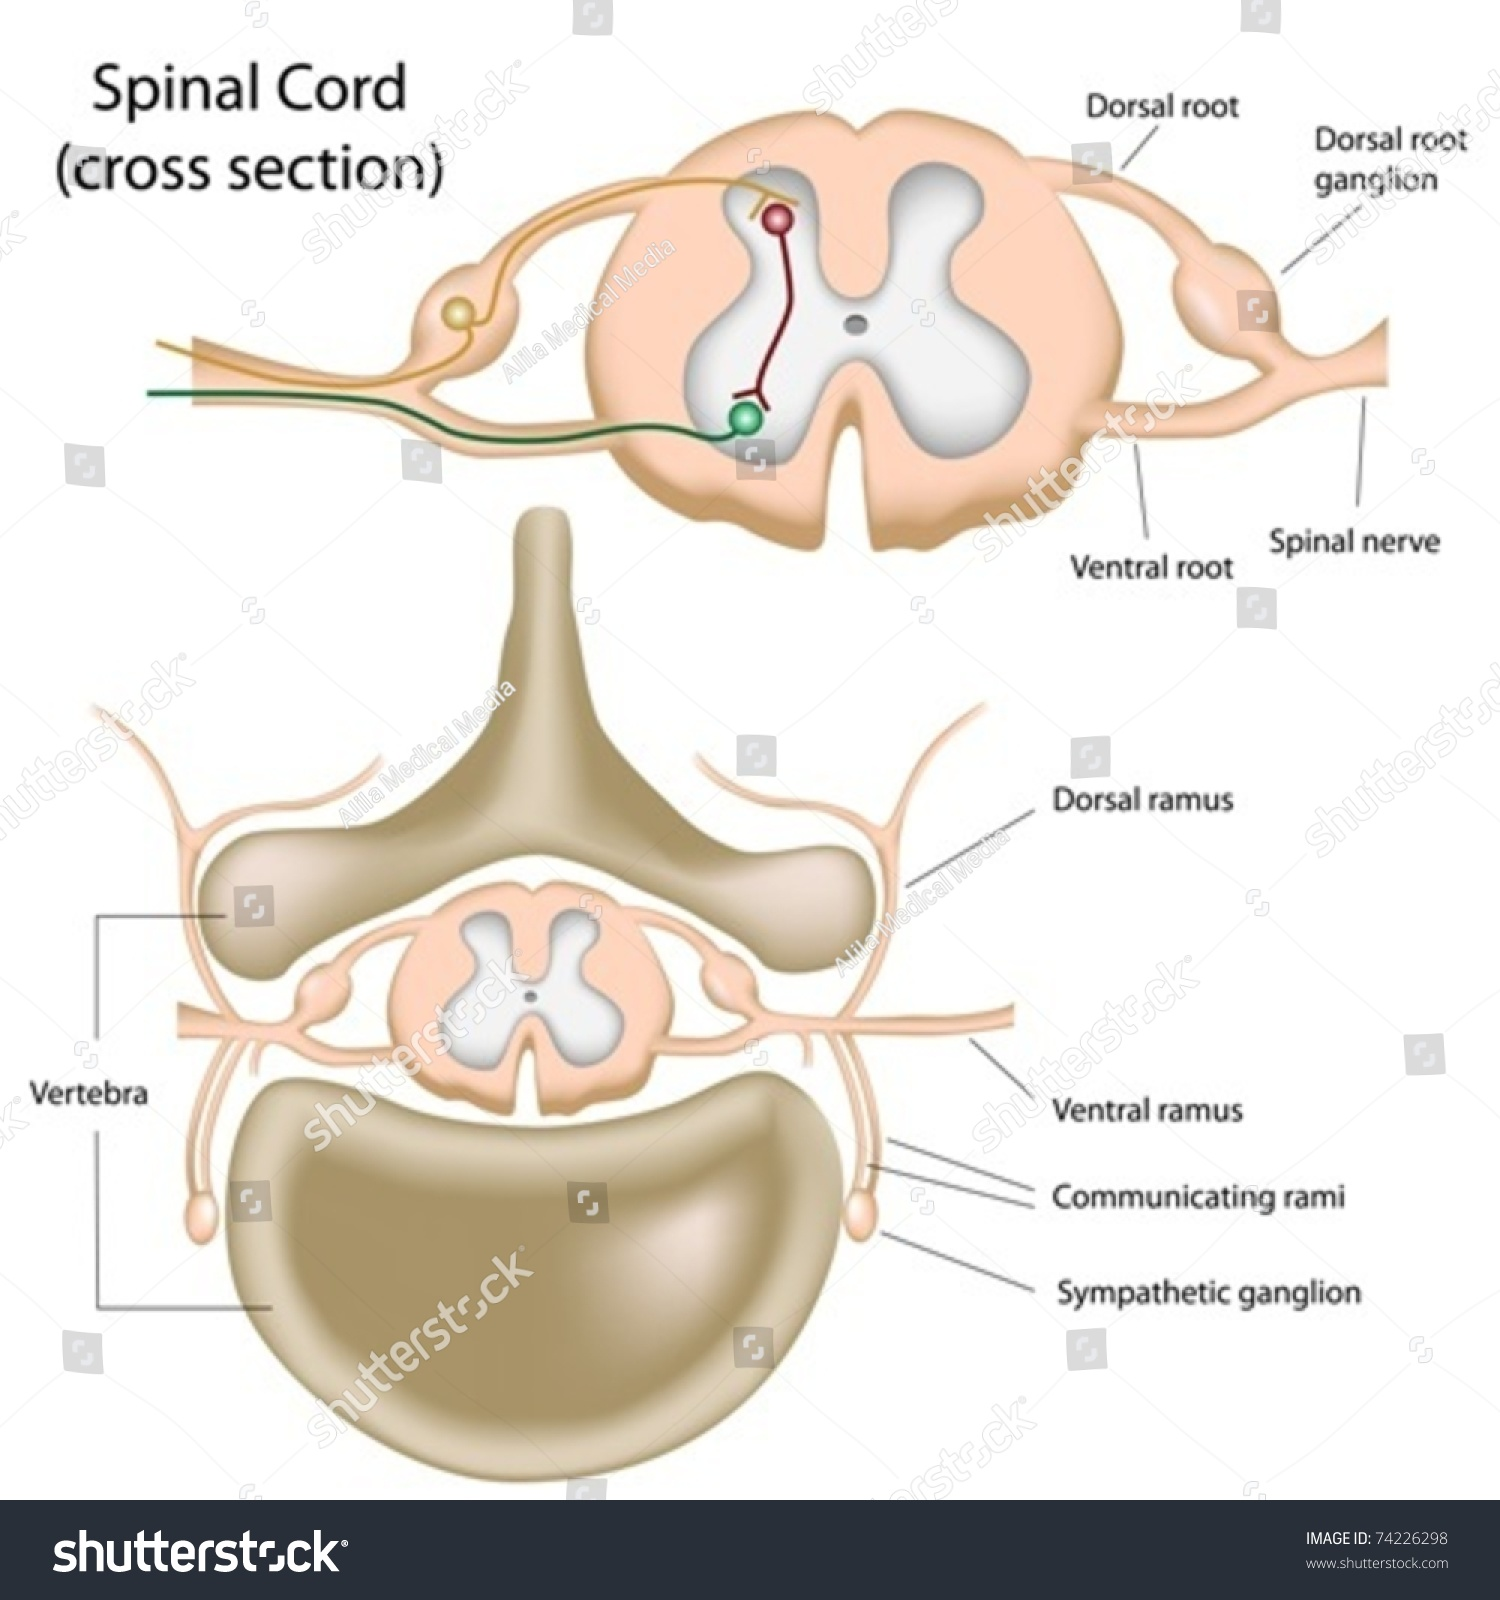 Cross Section Spinal Cord Stock Vector 74226298 - Shutterstock